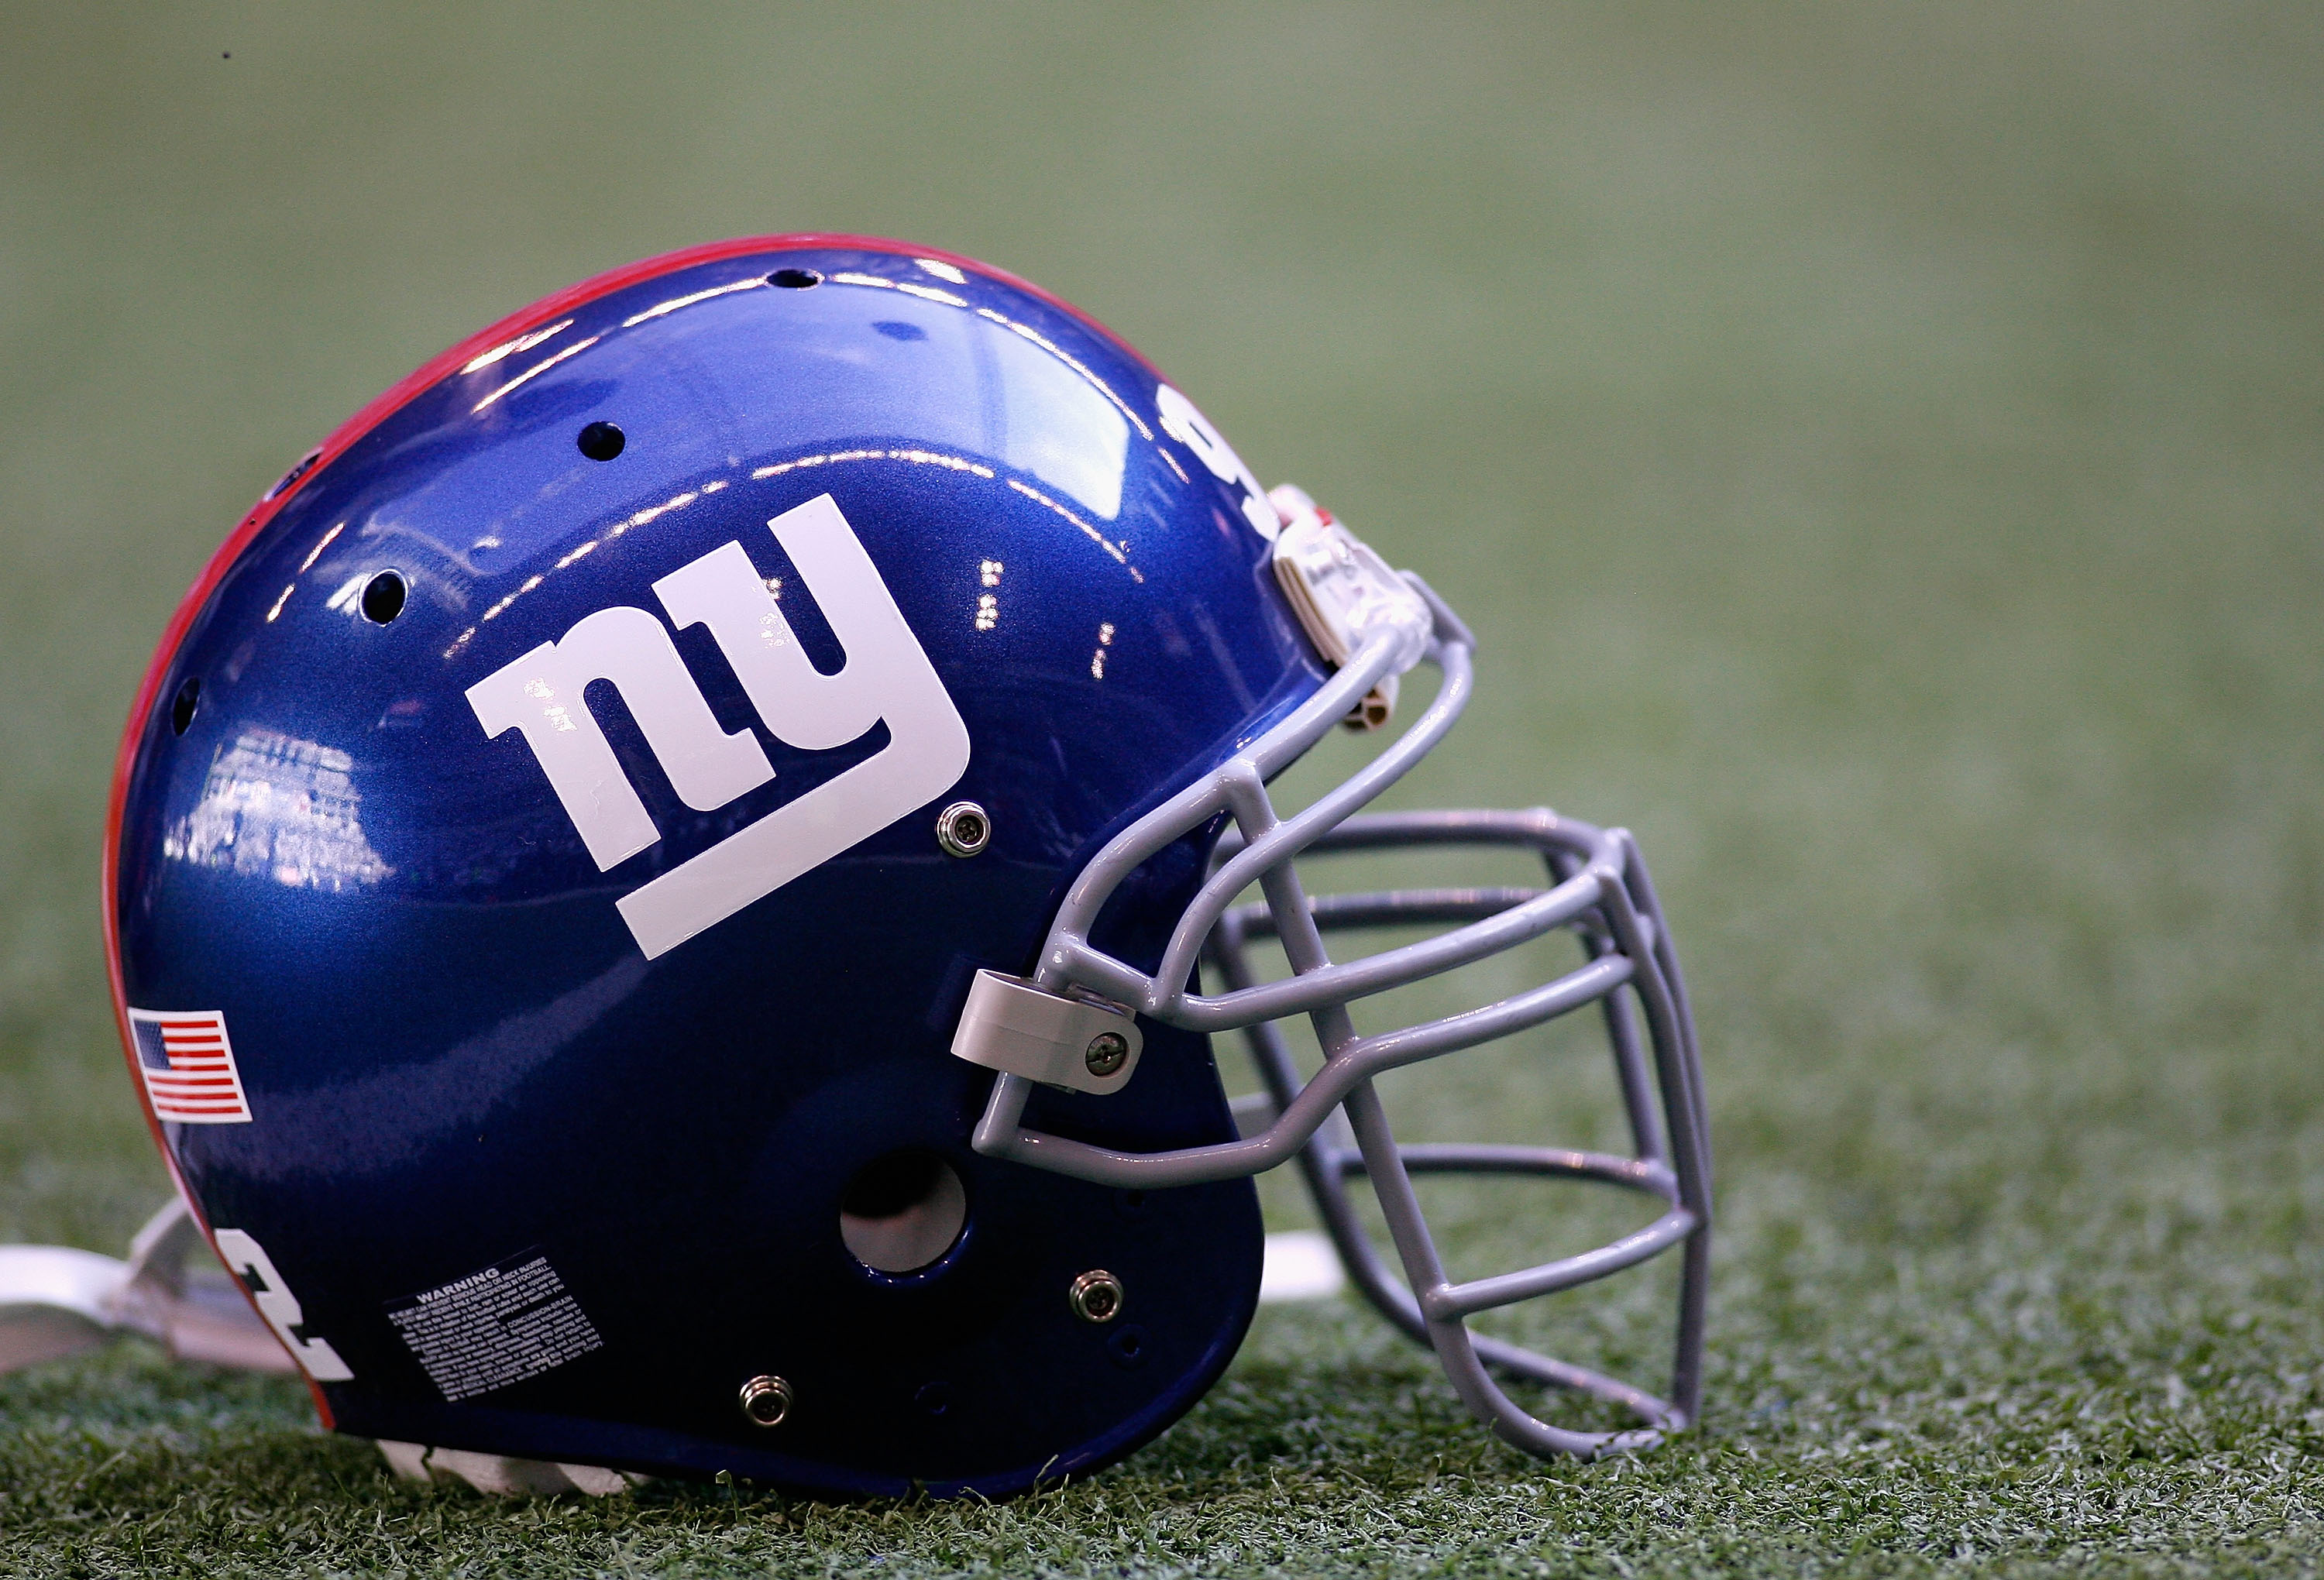 IRVING, TX - JANUARY 13:  A New York Giants helmet sits on the field before the NFC Divisional Playoff game against the Dallas Cowboys at Texas Stadium on January 13, 2008 in Irving, Texas.  (Photo by Chris Graythen/Getty Images)